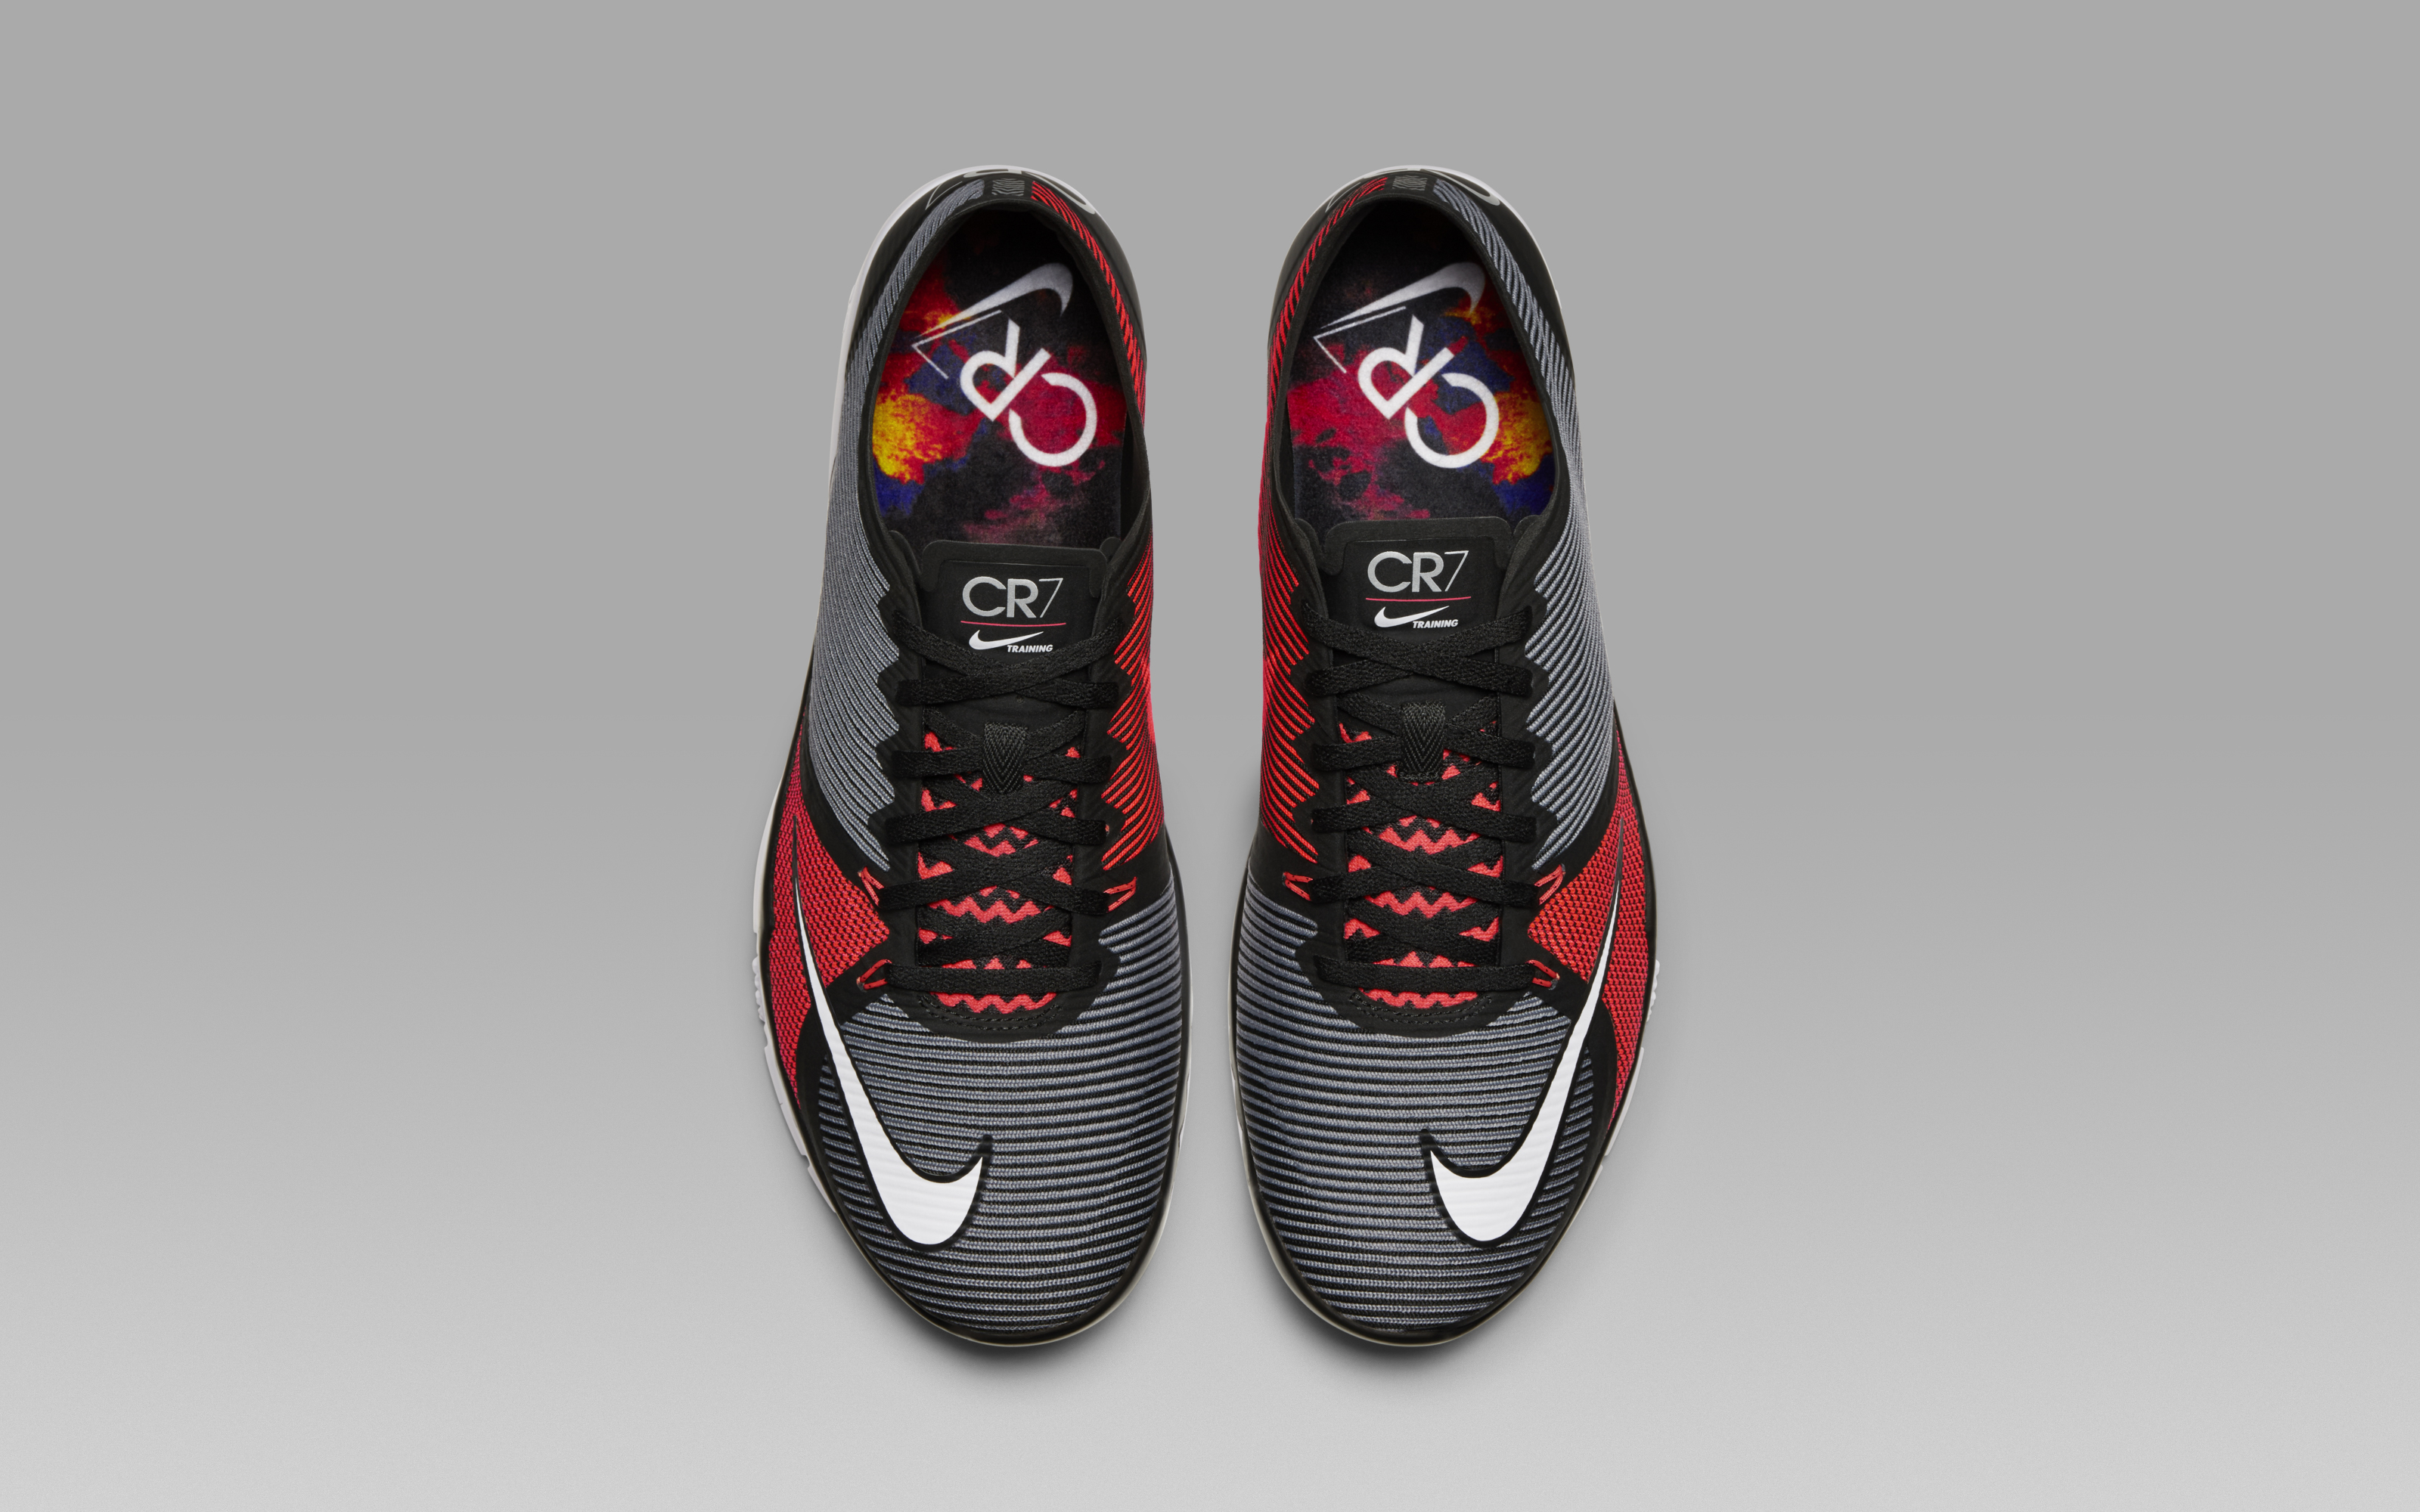 Nike Free Trainer 3.0 CR7 Reveals Cristiano Ronaldo's Powerful Roots